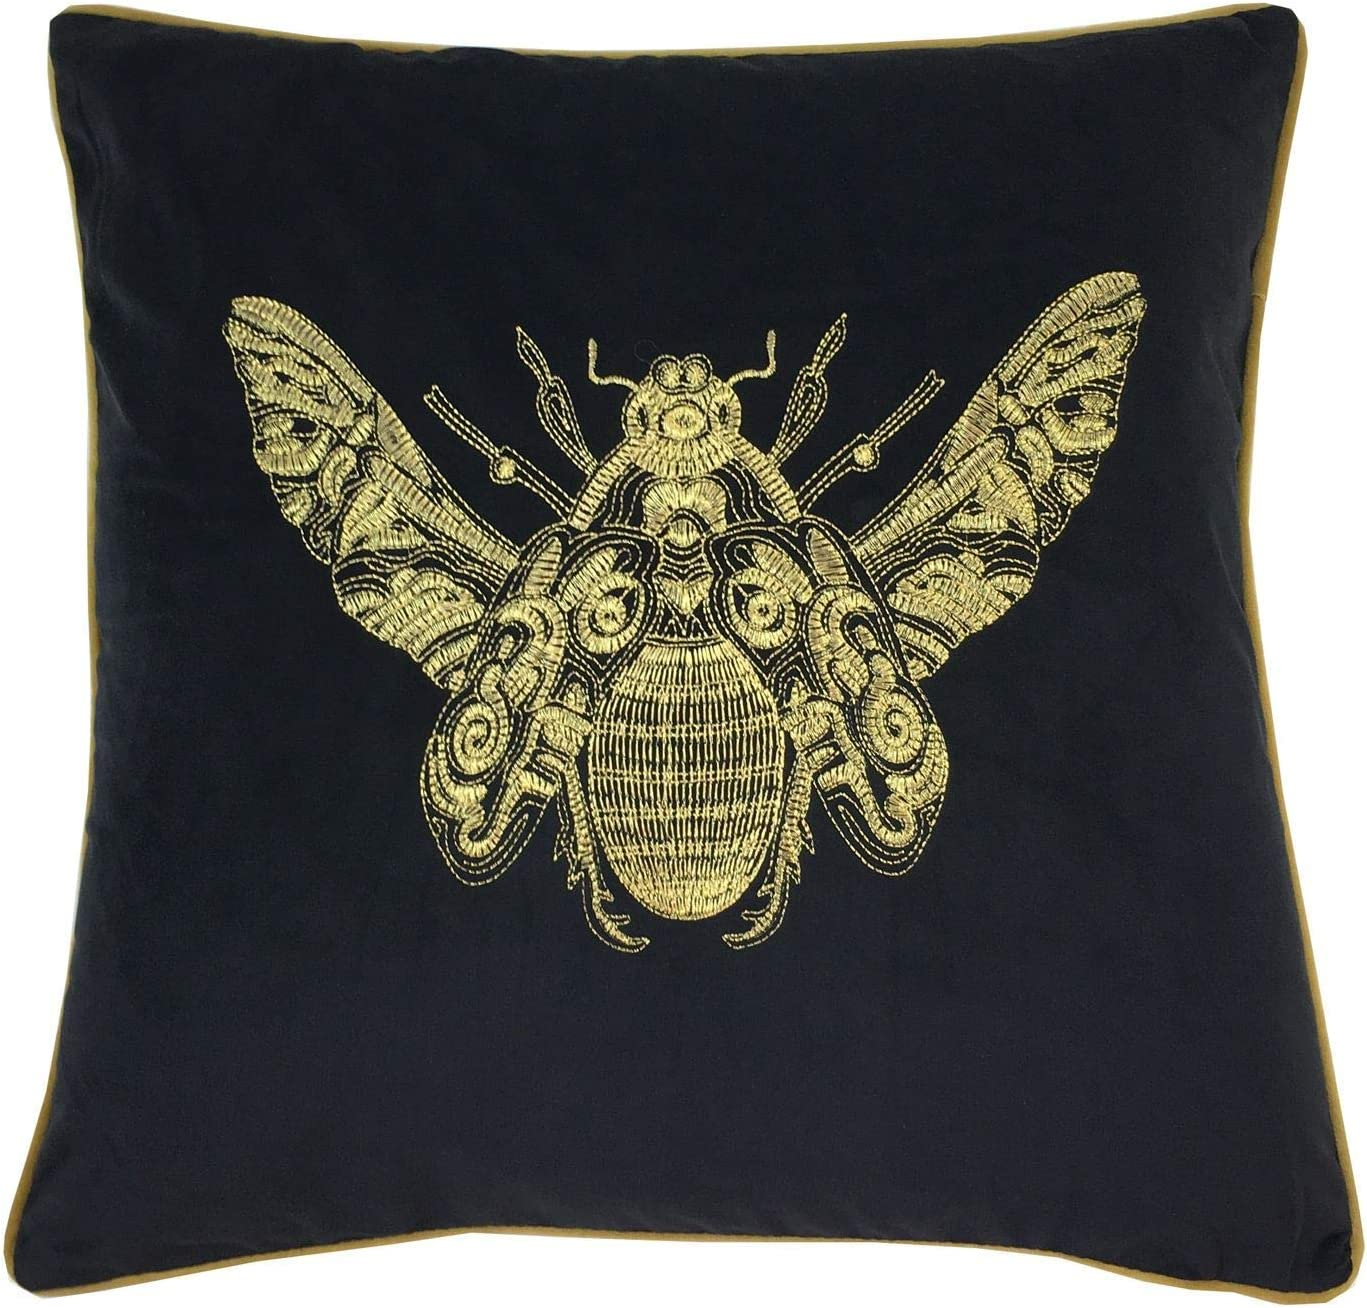 Embroidered Bumble Bee Black Gold Velvet Piped 20 50cm Cushion Cover Amazon Co Uk Garden Outdoors